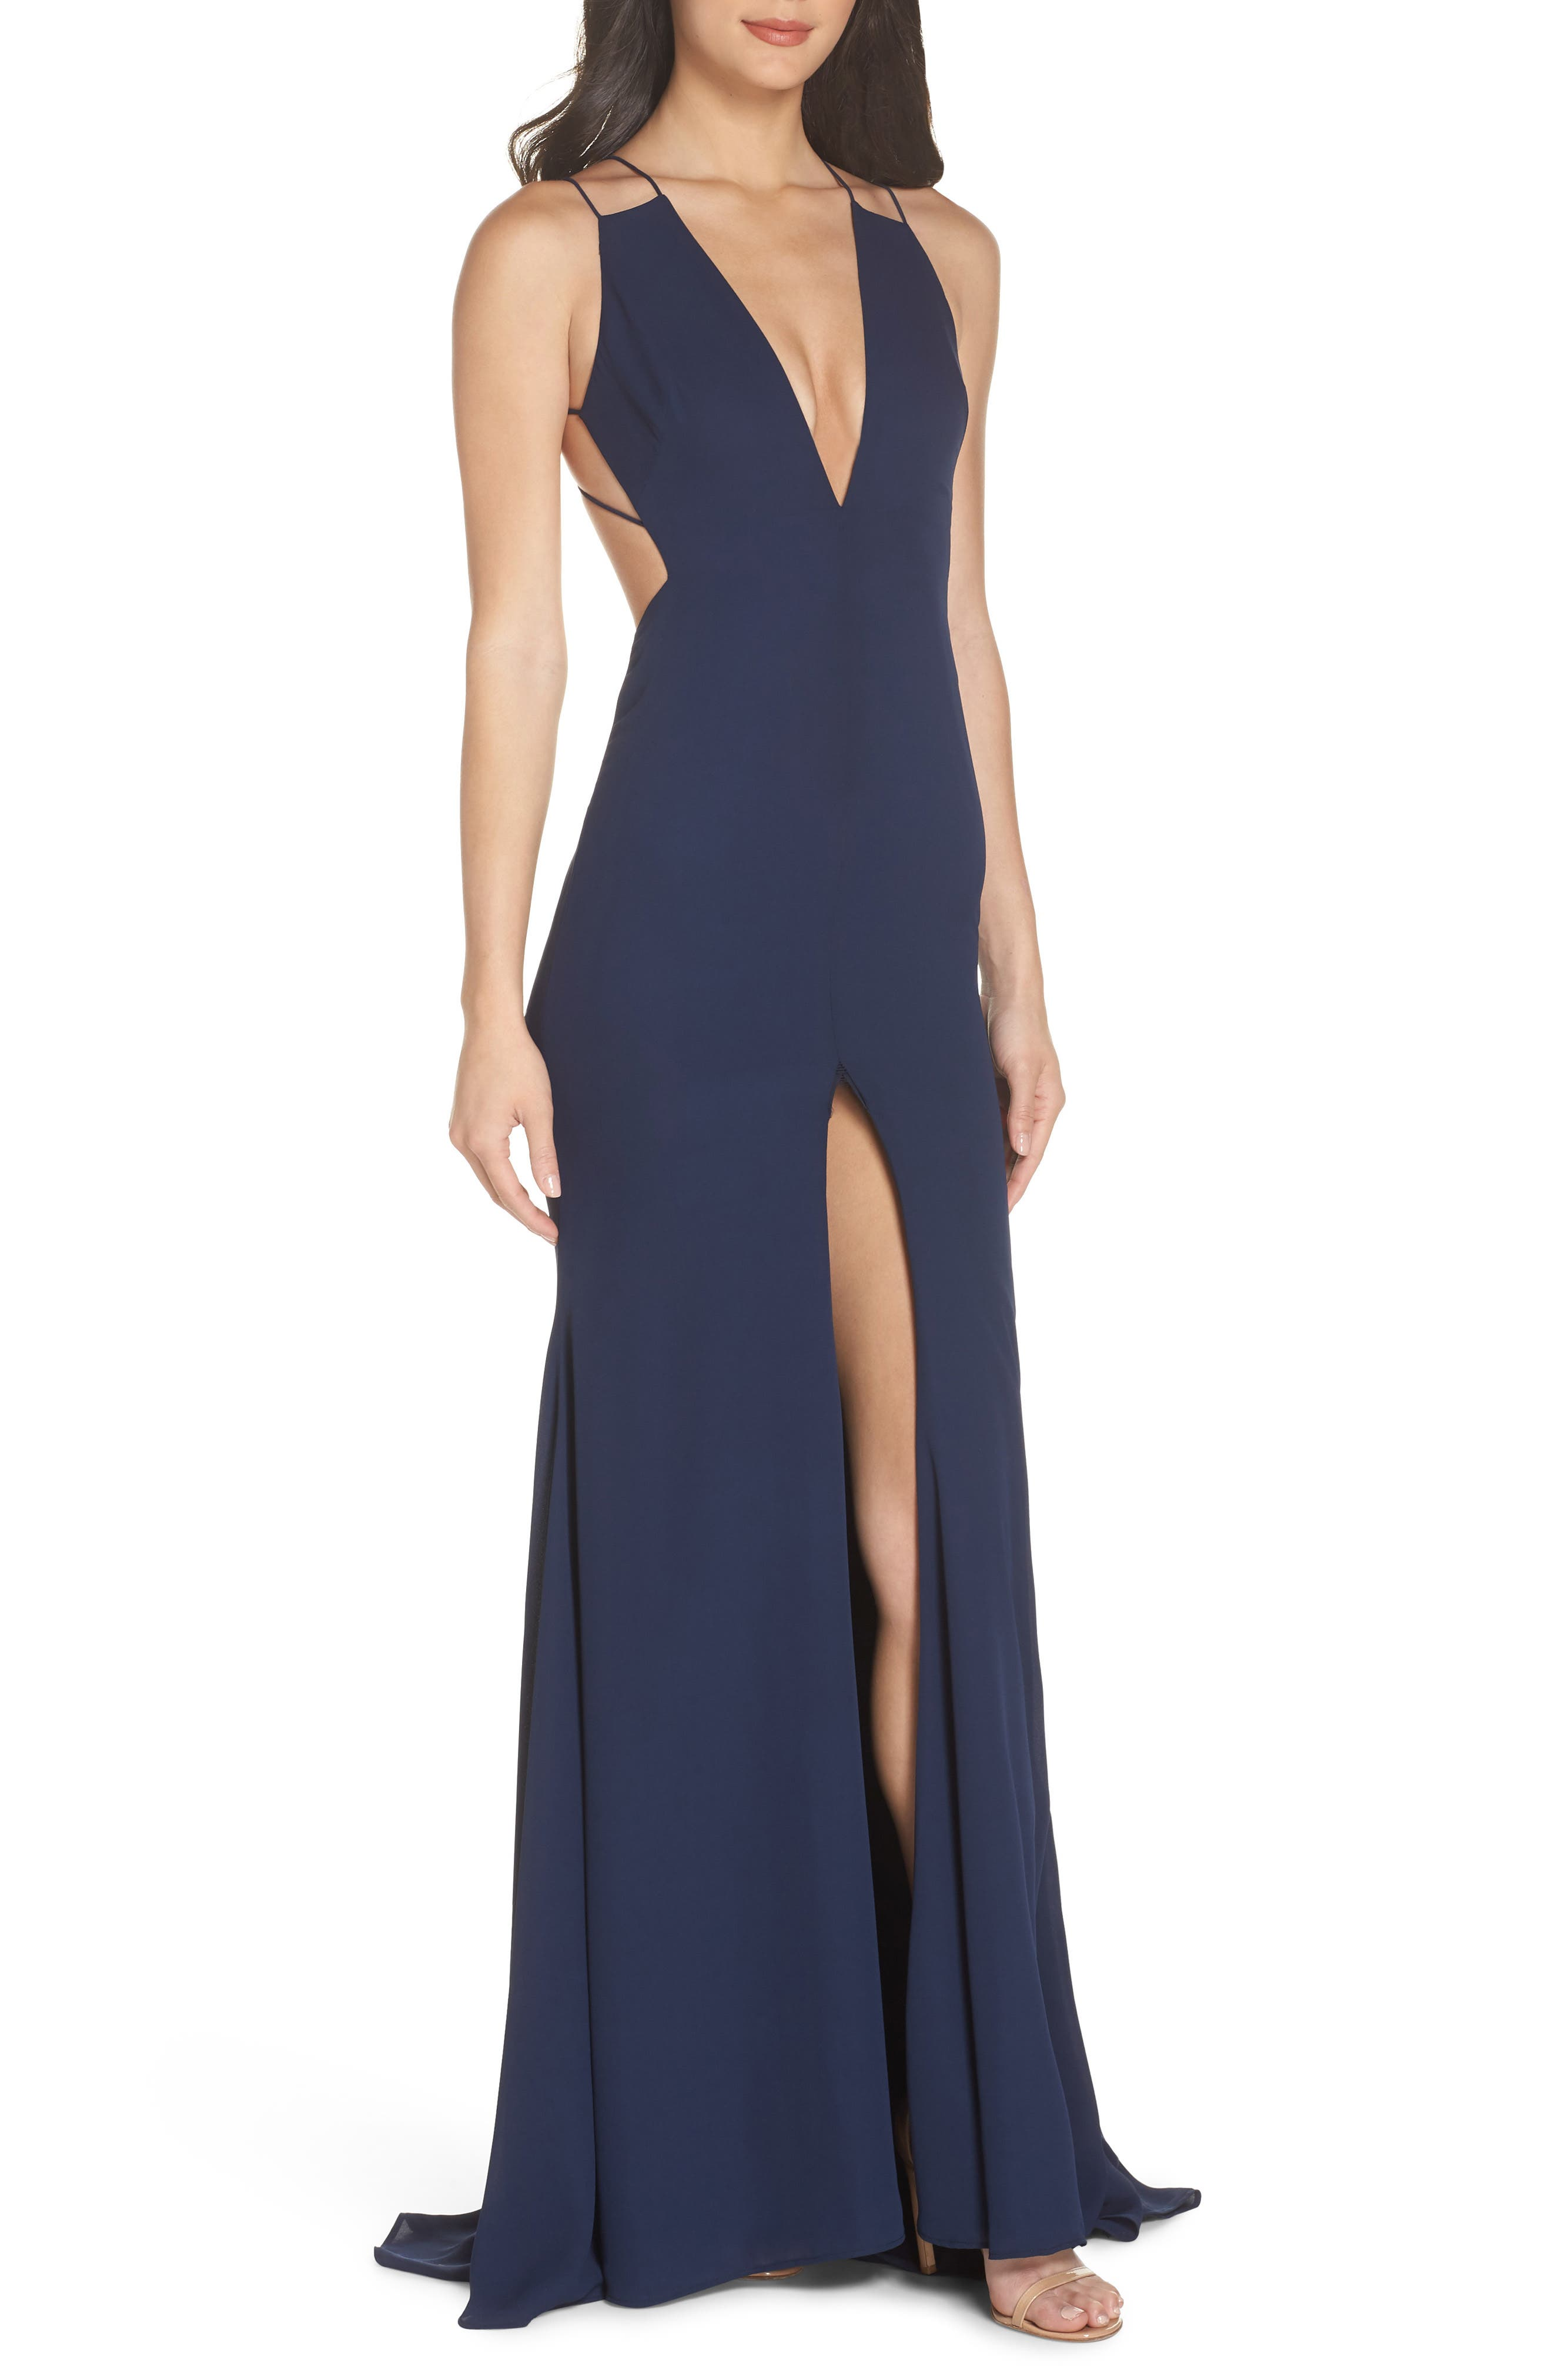 Fame & Partners Surreal Dreamer Cutout Gown,                             Main thumbnail 1, color,                             NAVY